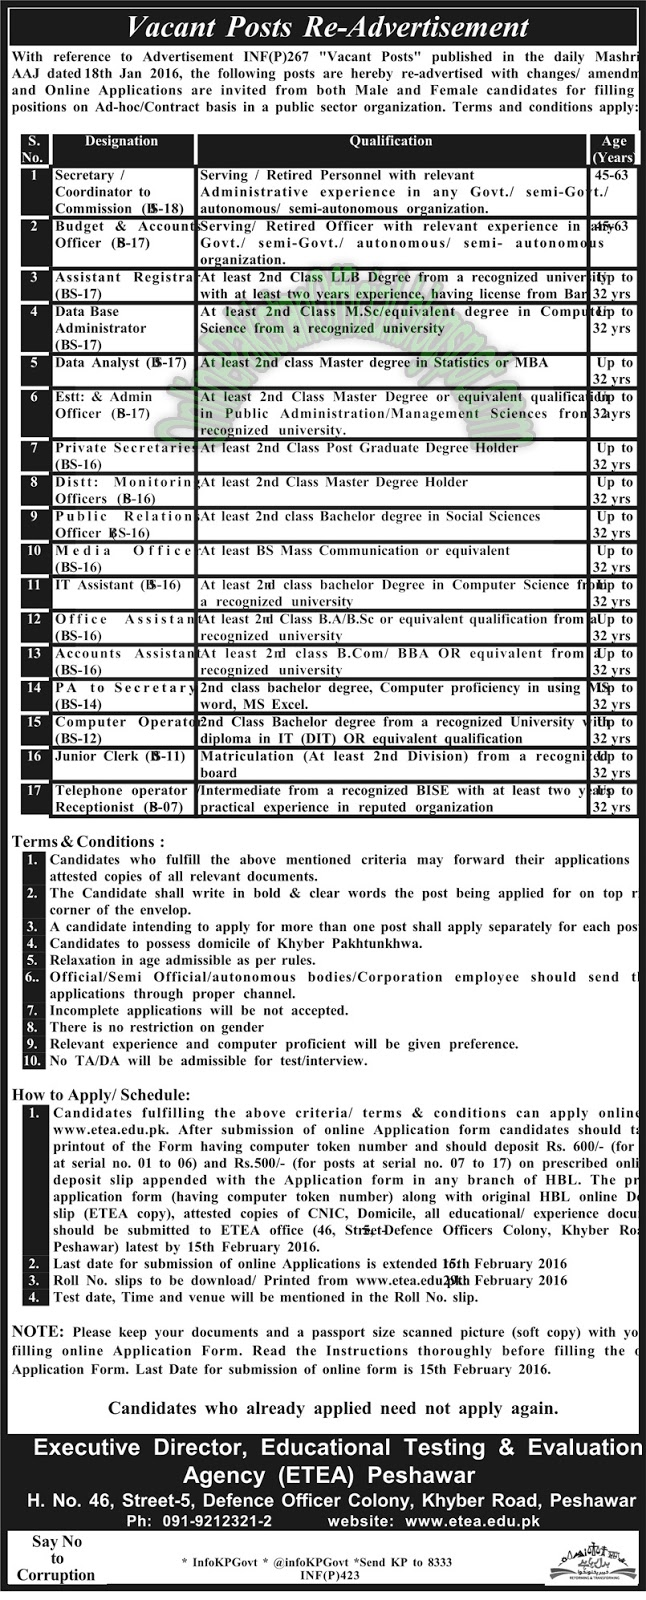 Educational Testing & Evaluation Agency jobs peshawar